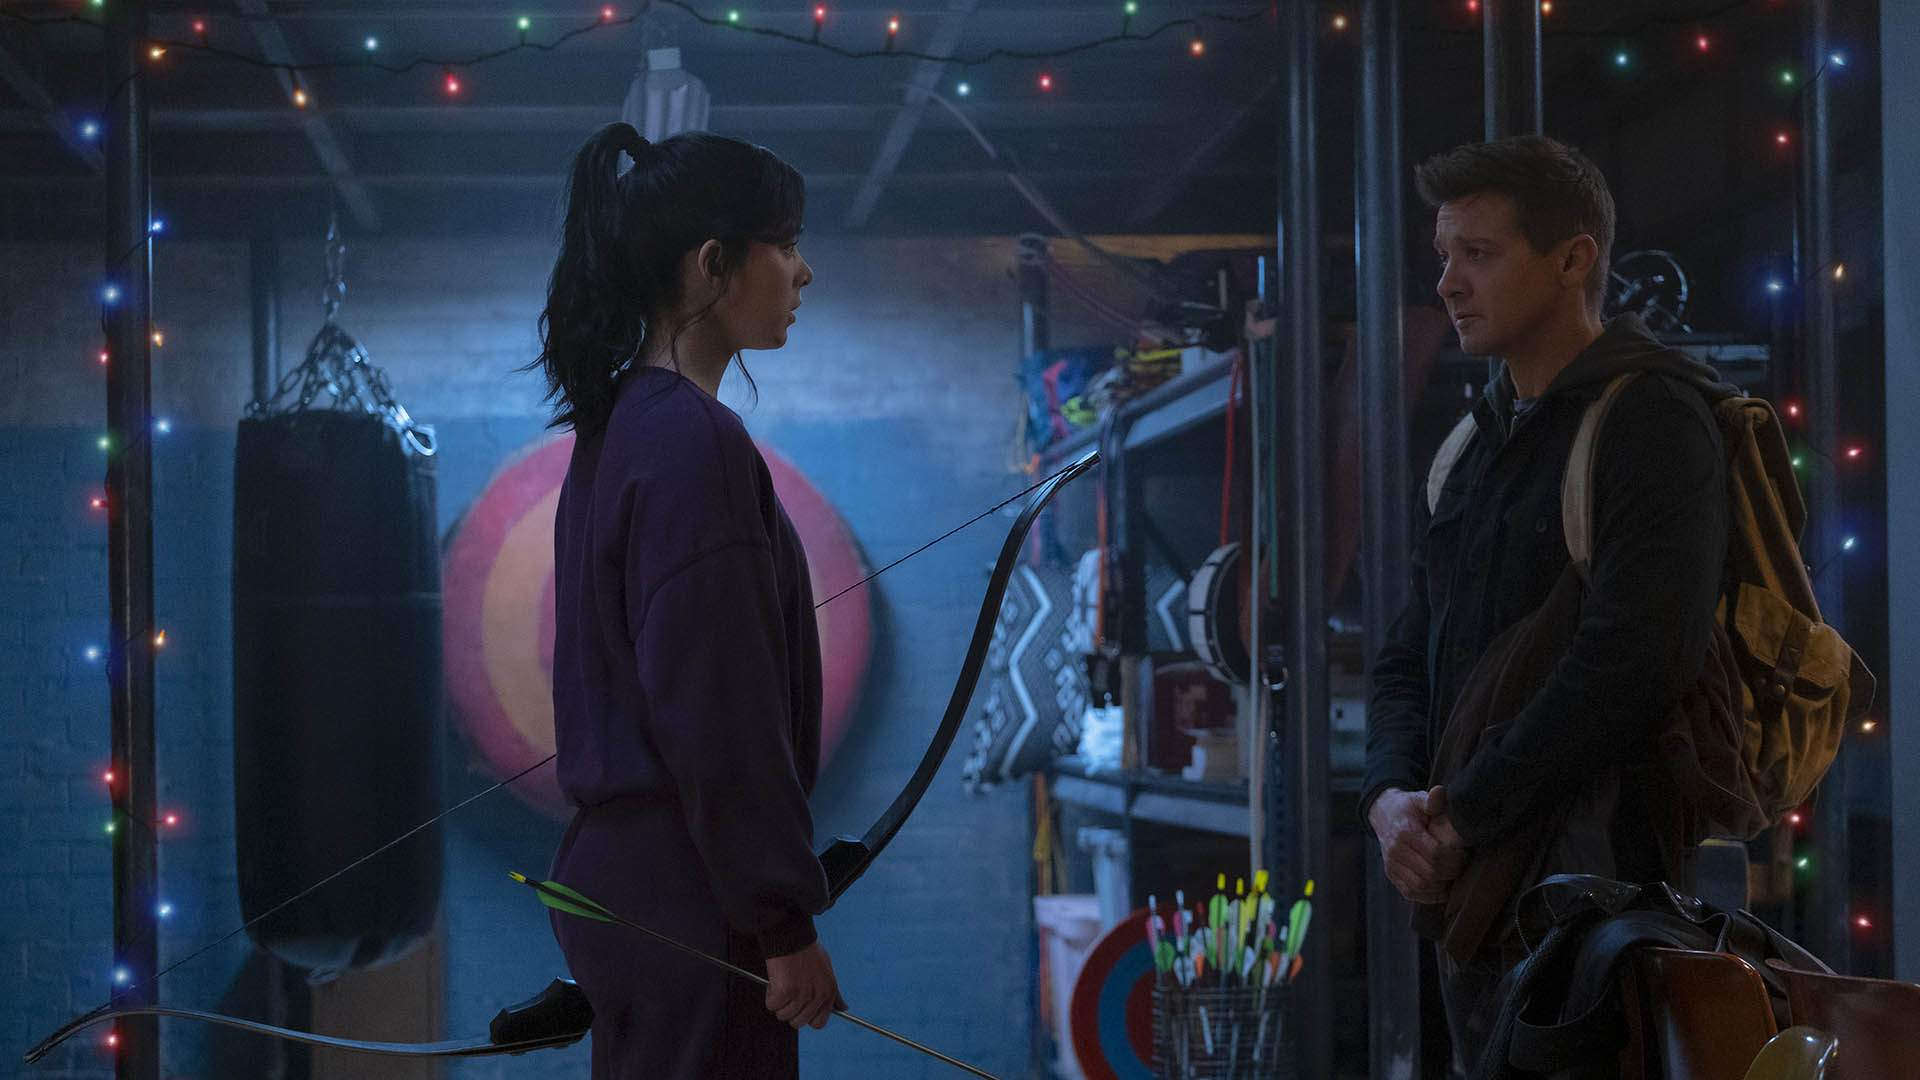 The First Trailer for Marvel's New 'Hawkeye' Series Combines Superheroes and Christmas Hijinks